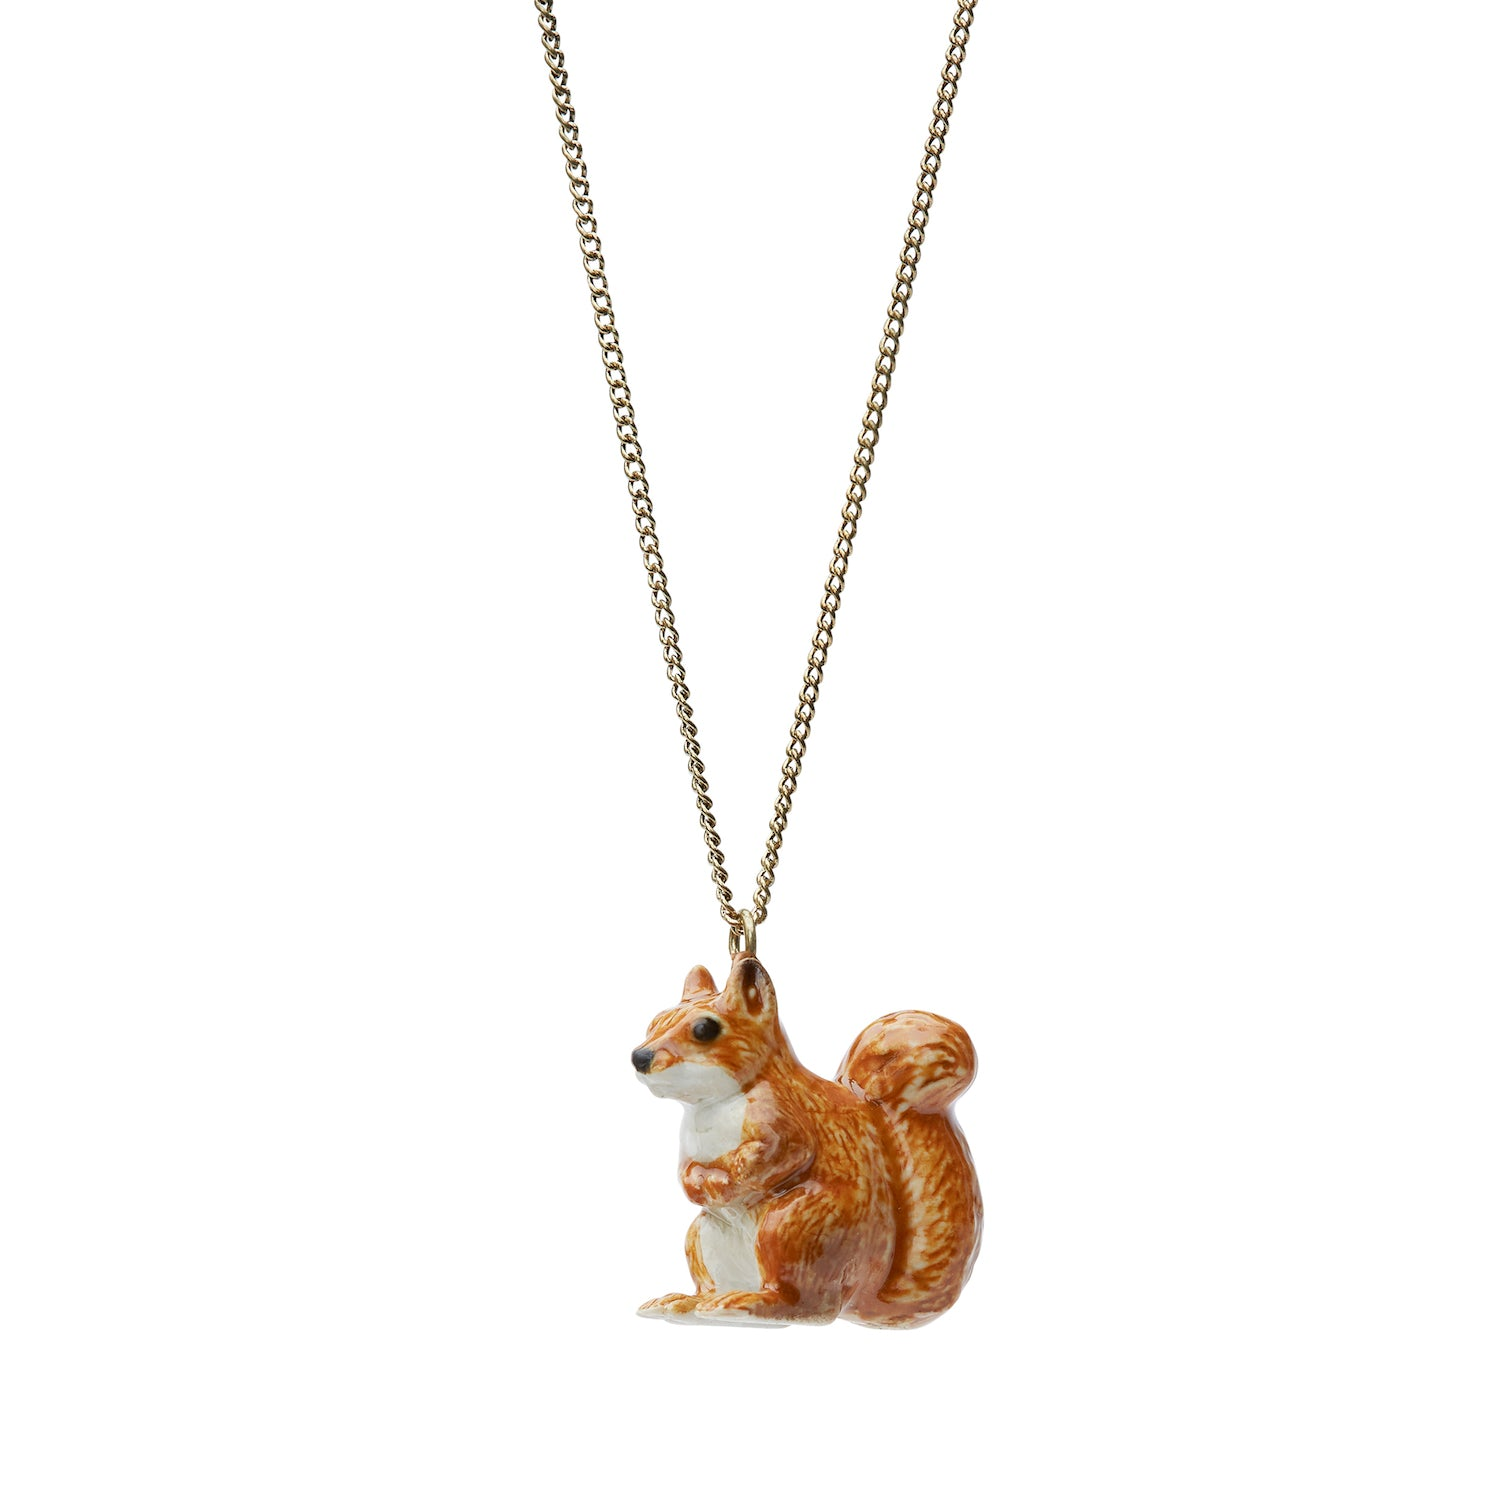 Tiny Standing Squirrel Necklace